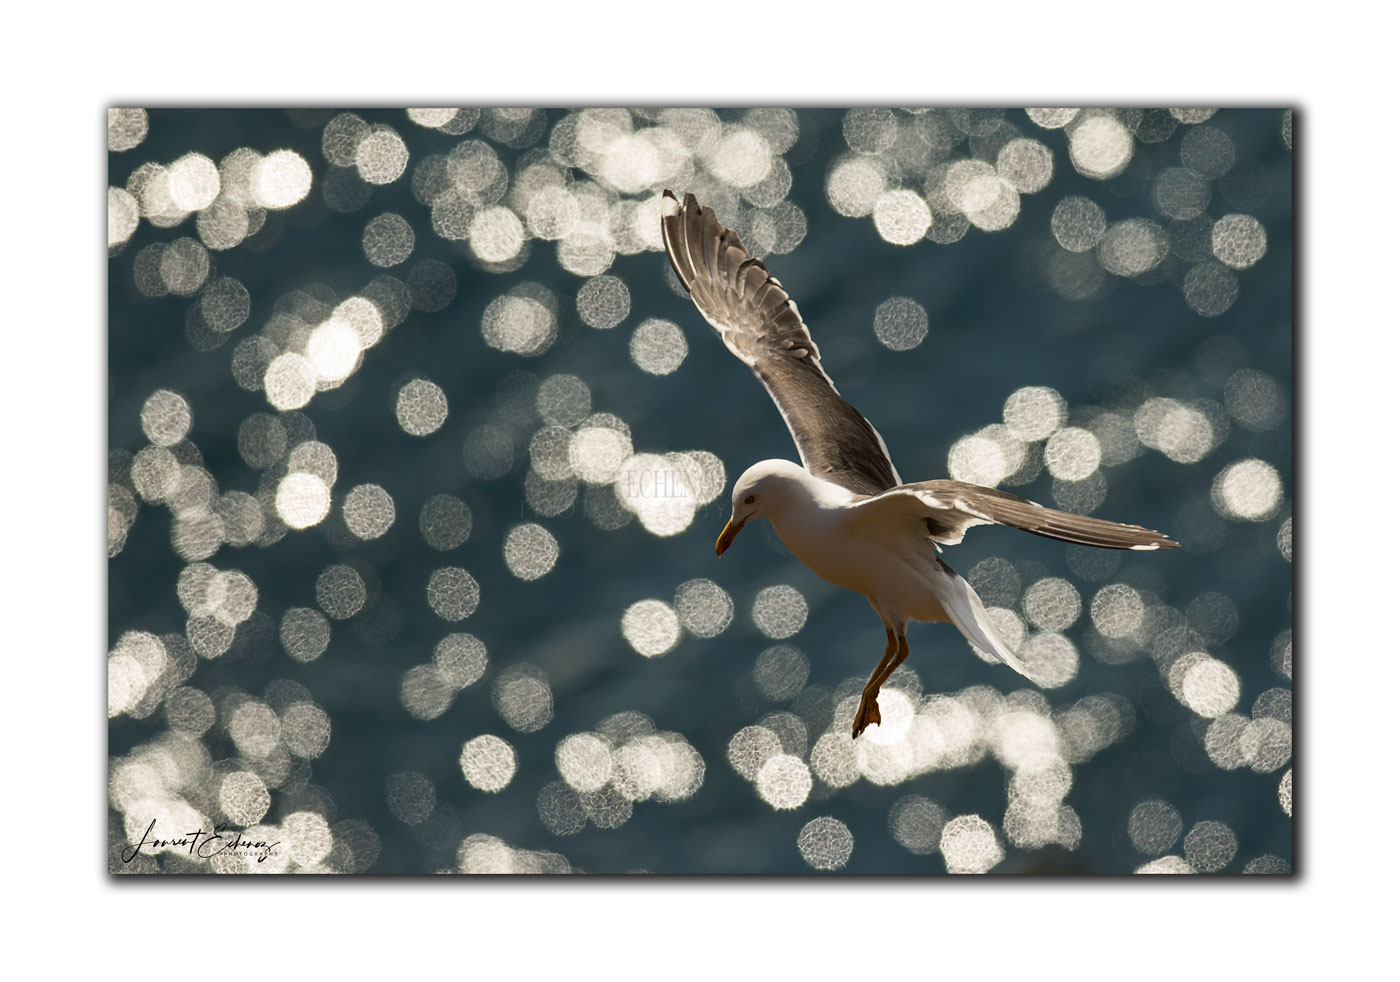 Mouette fly